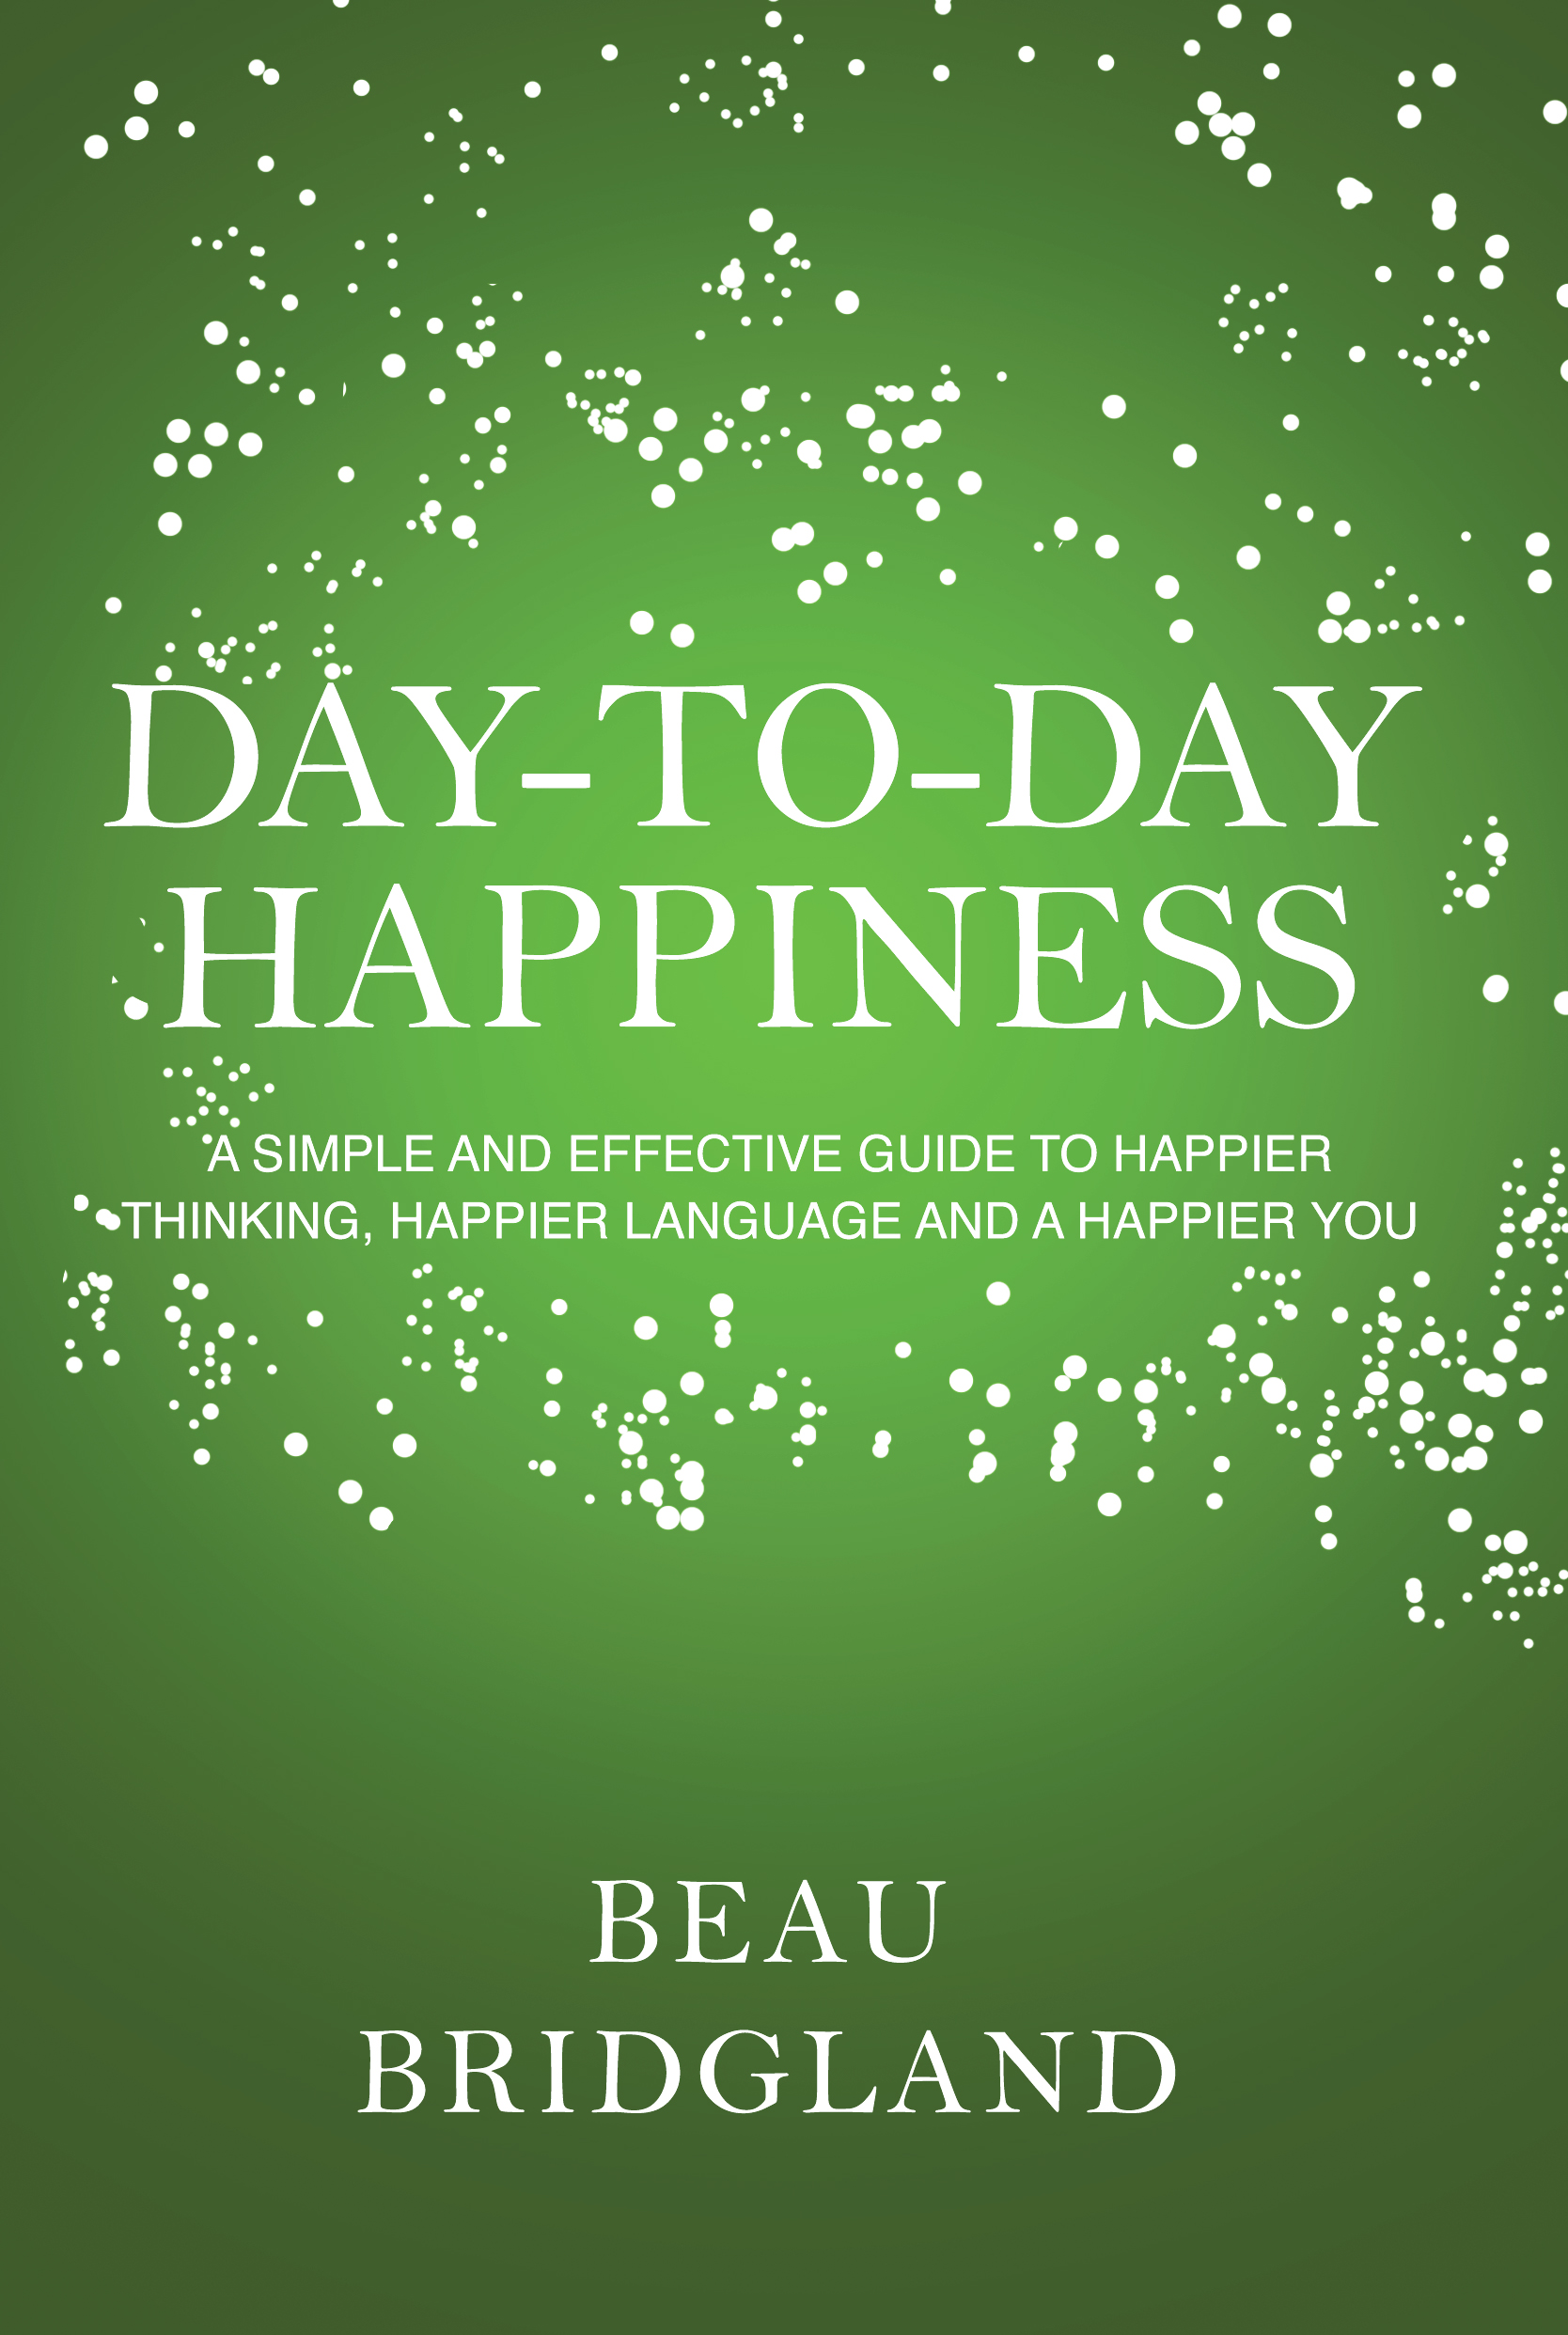 Day-To-Day Happiness: A simple and effective guide to happier thinking, happier language and a happier you